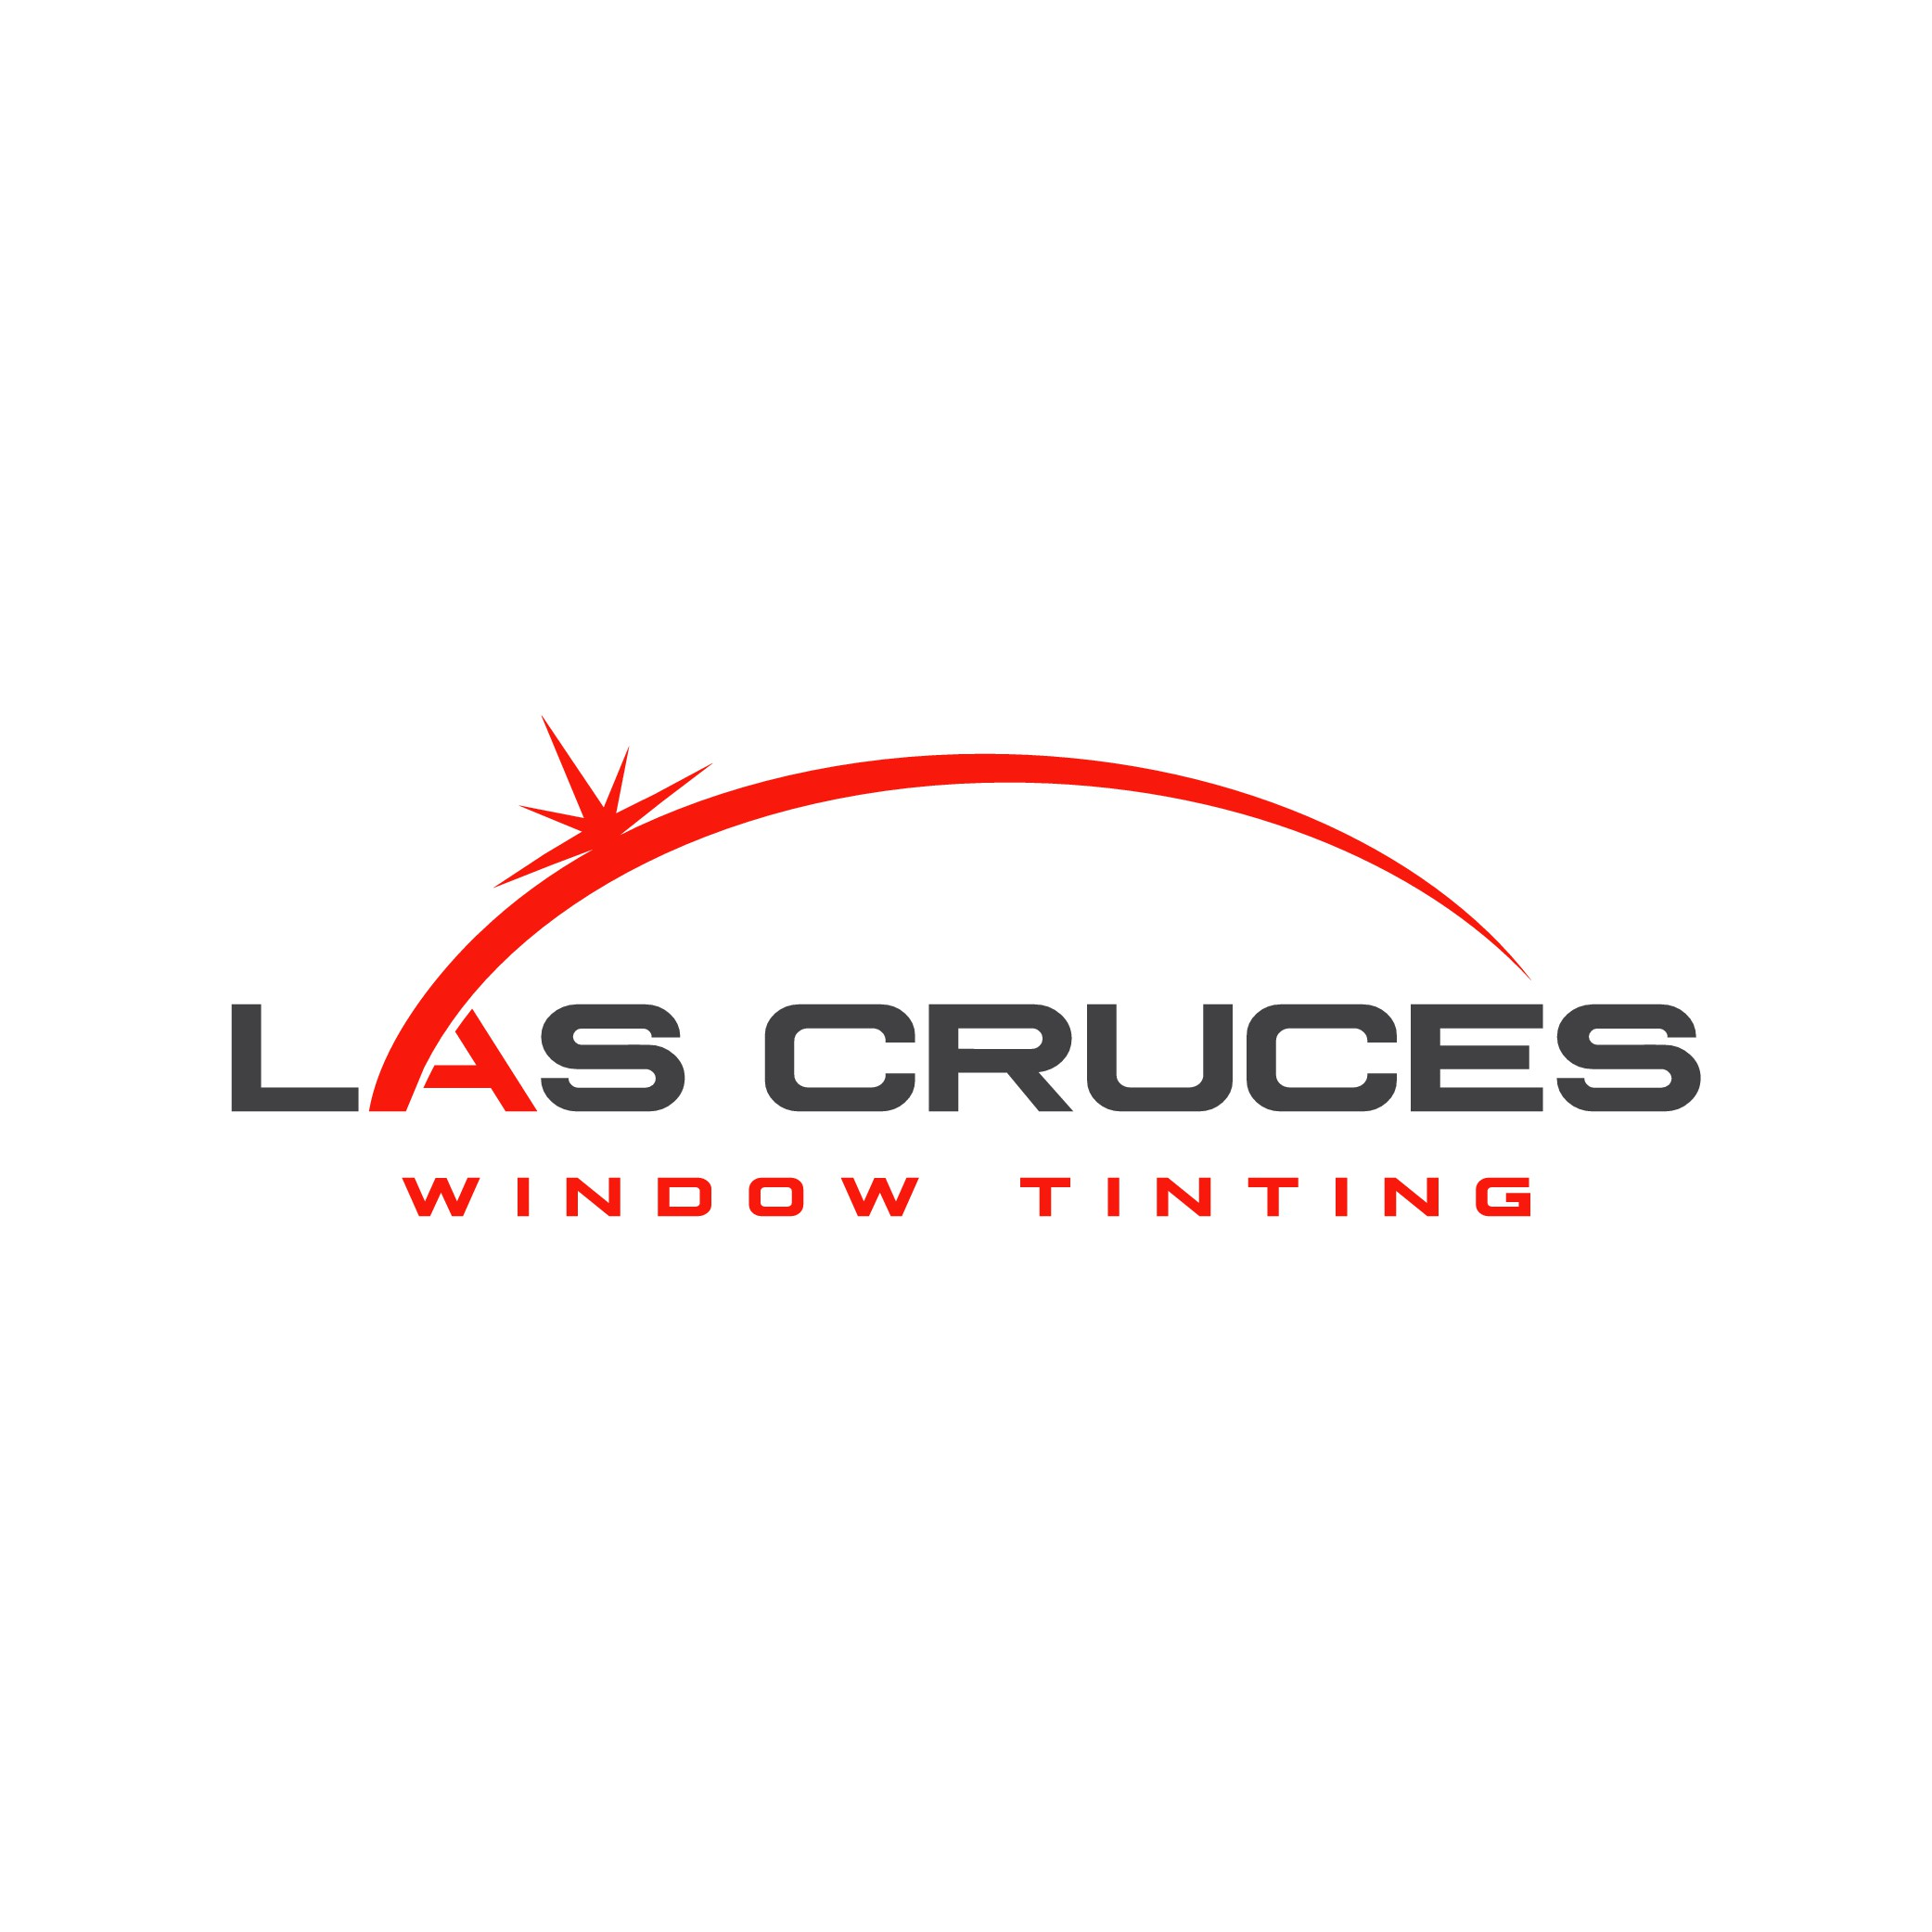 Window Tinting Company needs Sophisticated, Clean, Modern identity